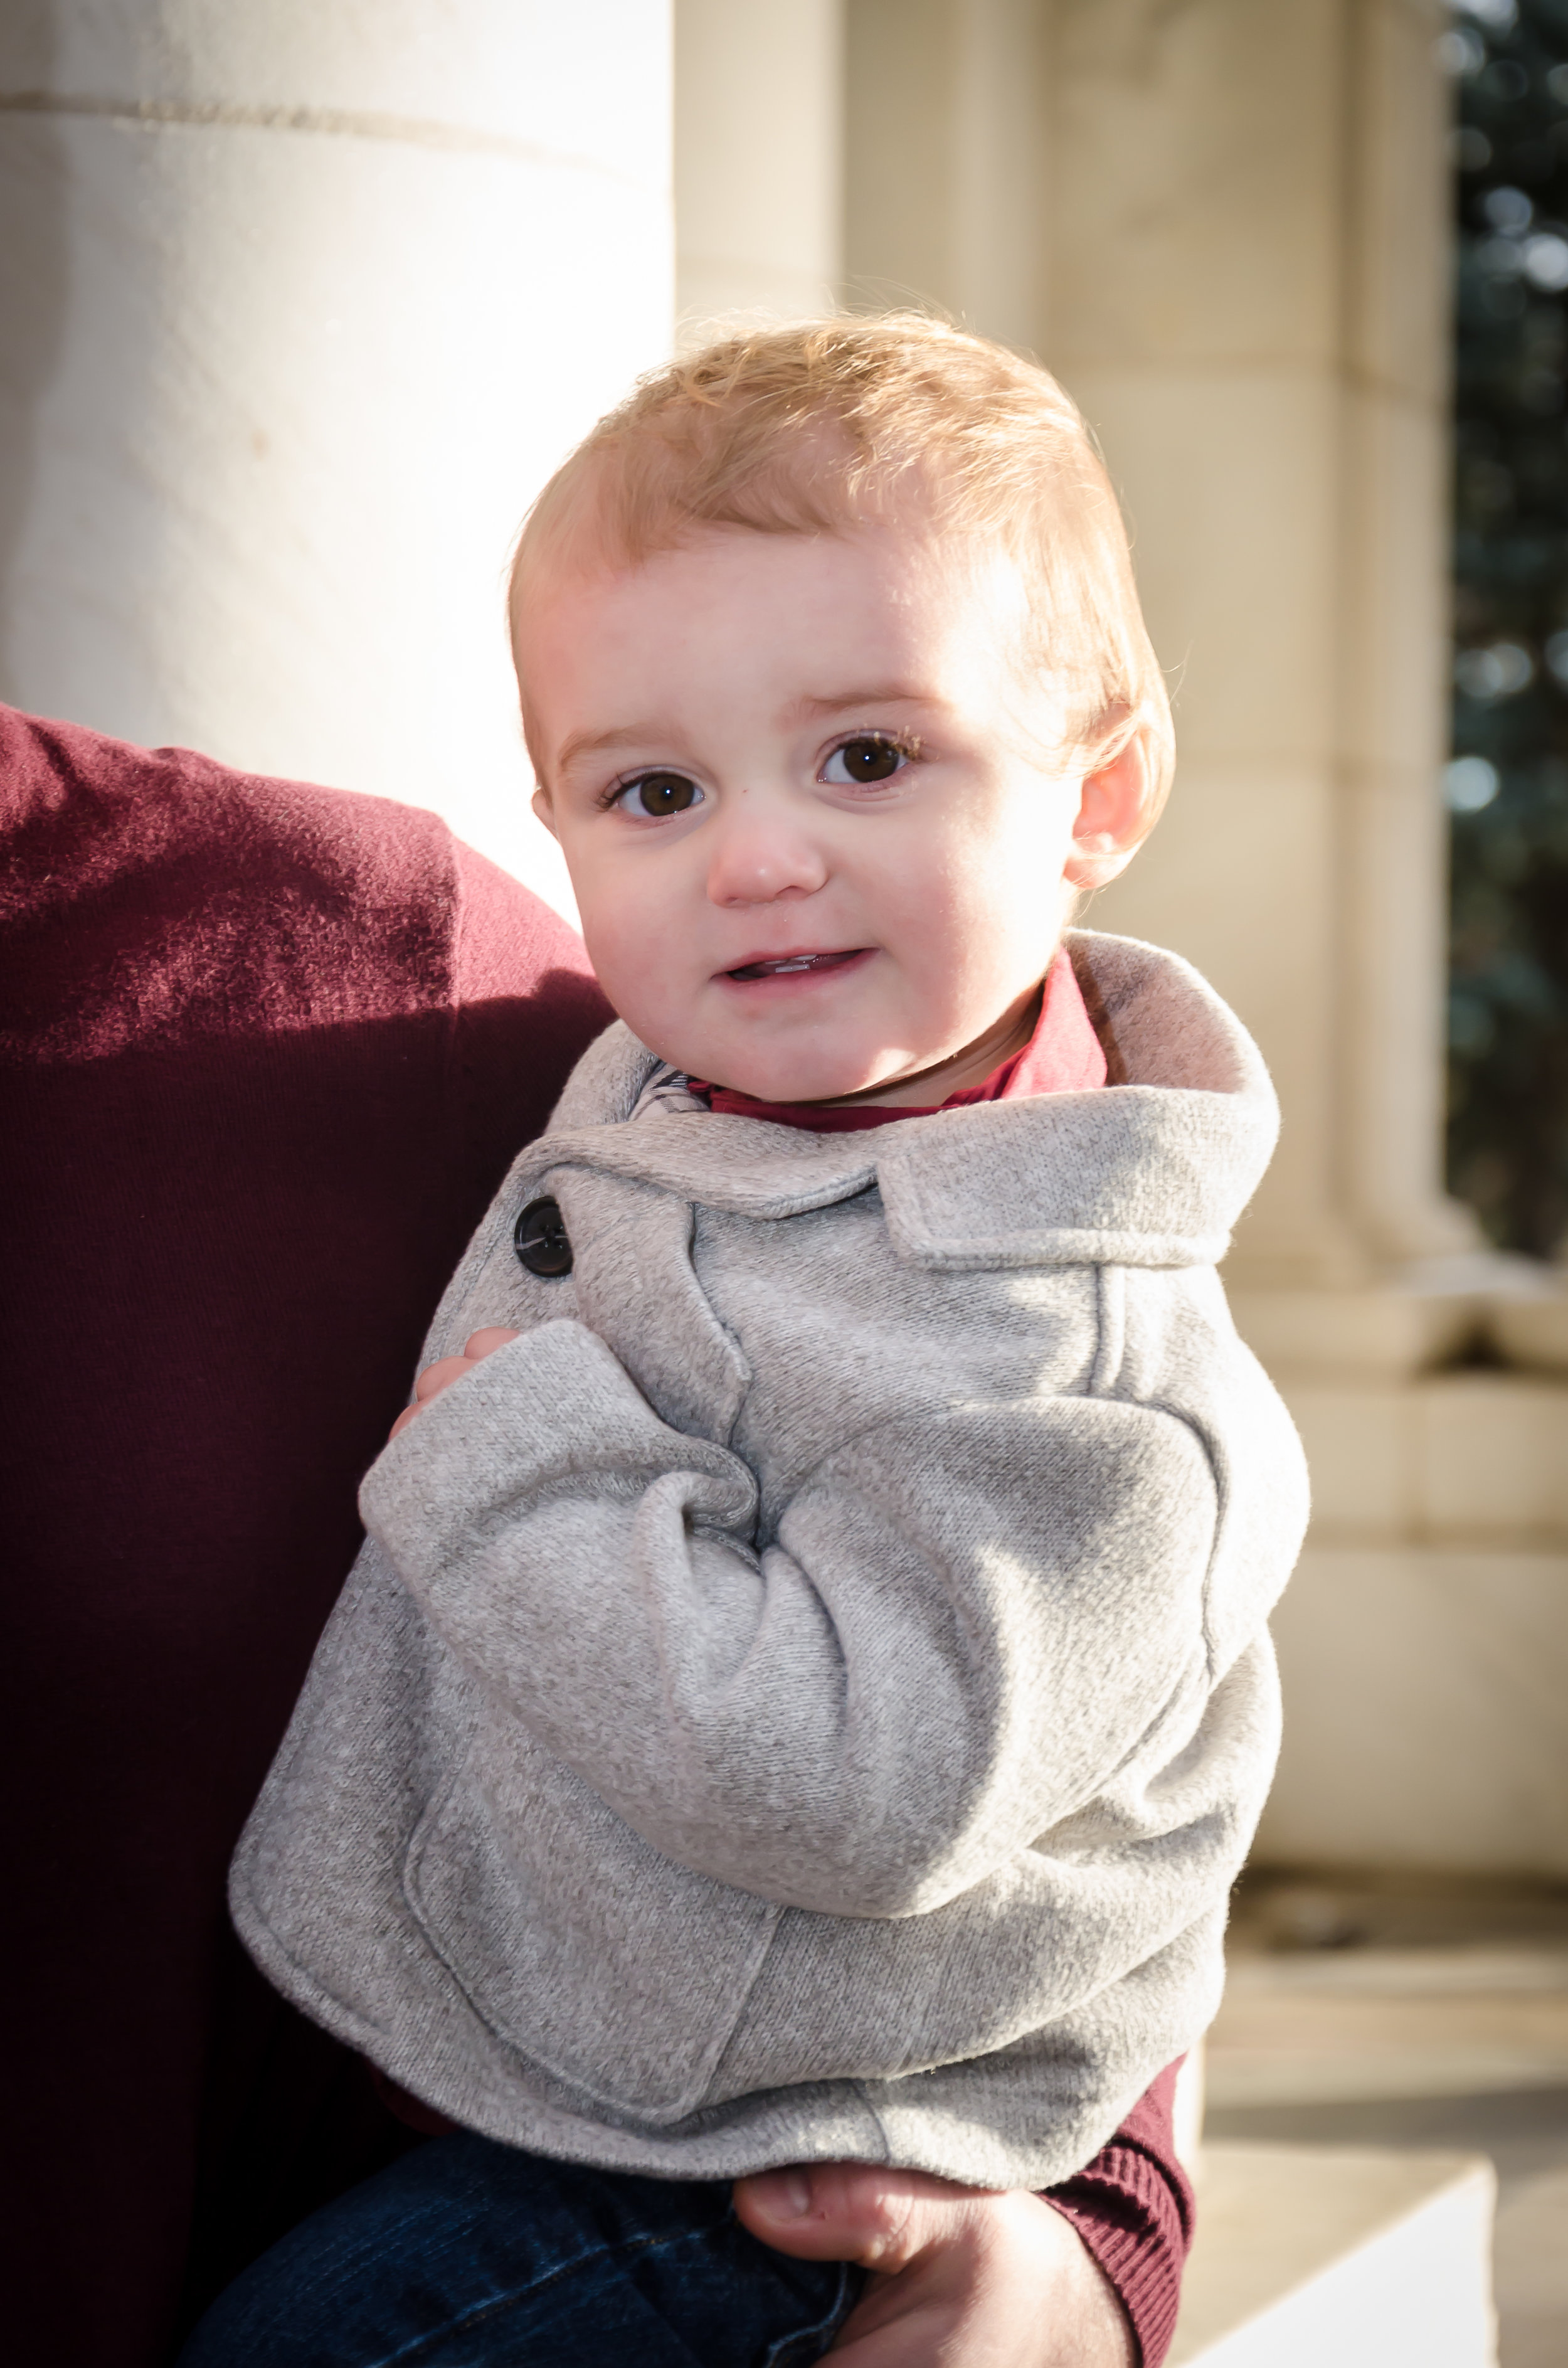 This picture does not do him justice, our little Theo is the darn cutest thing you ever did see! His smile and laughter light up a room, and his chubby cheeks are soooo edible!